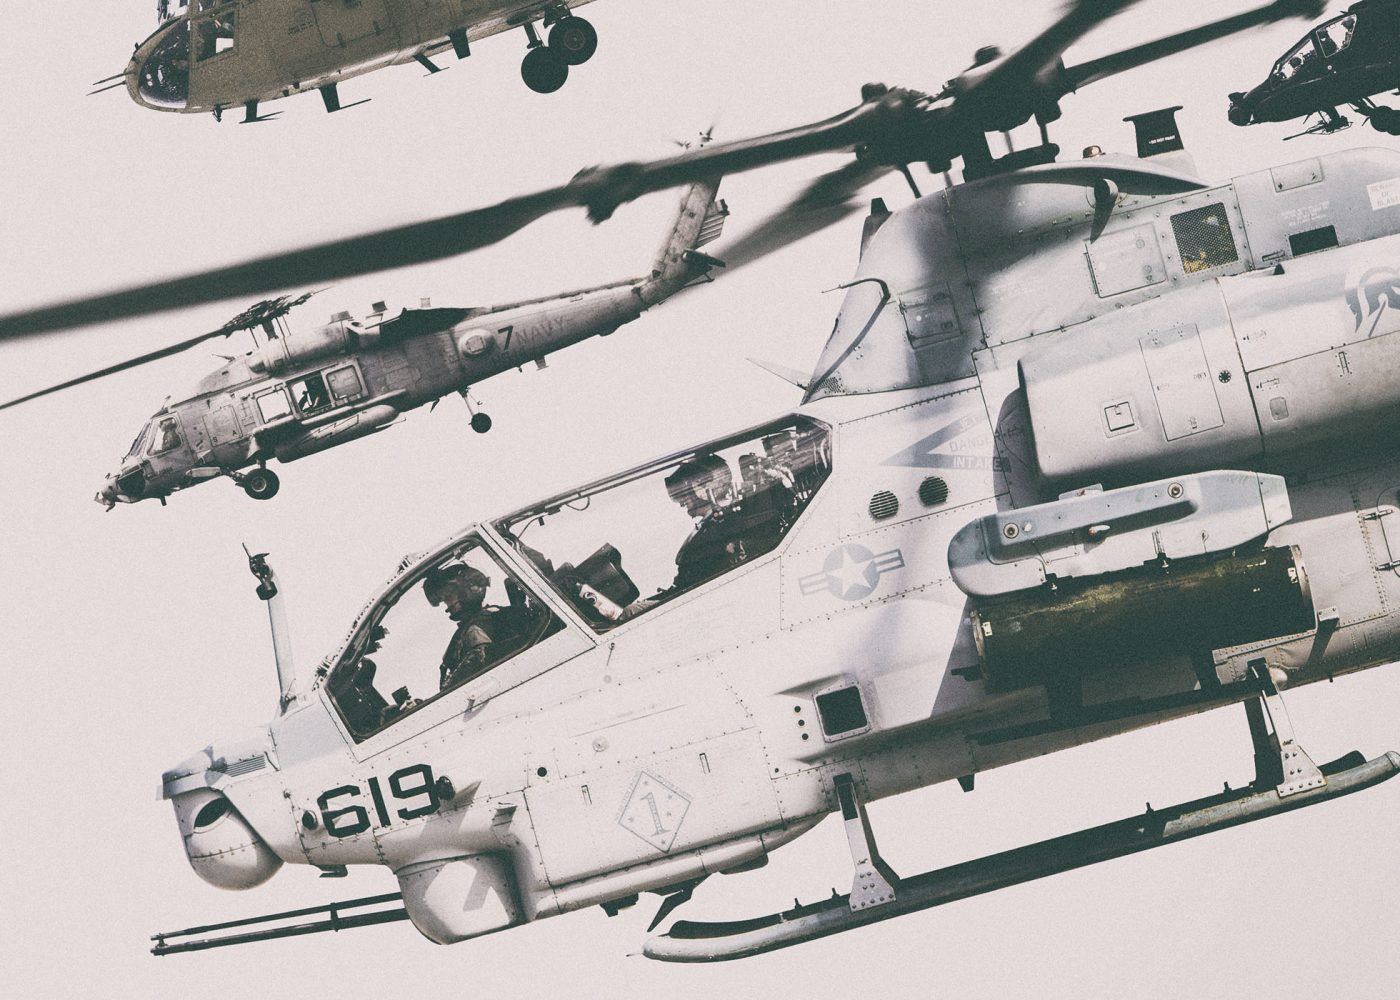 024 – Helicopters!